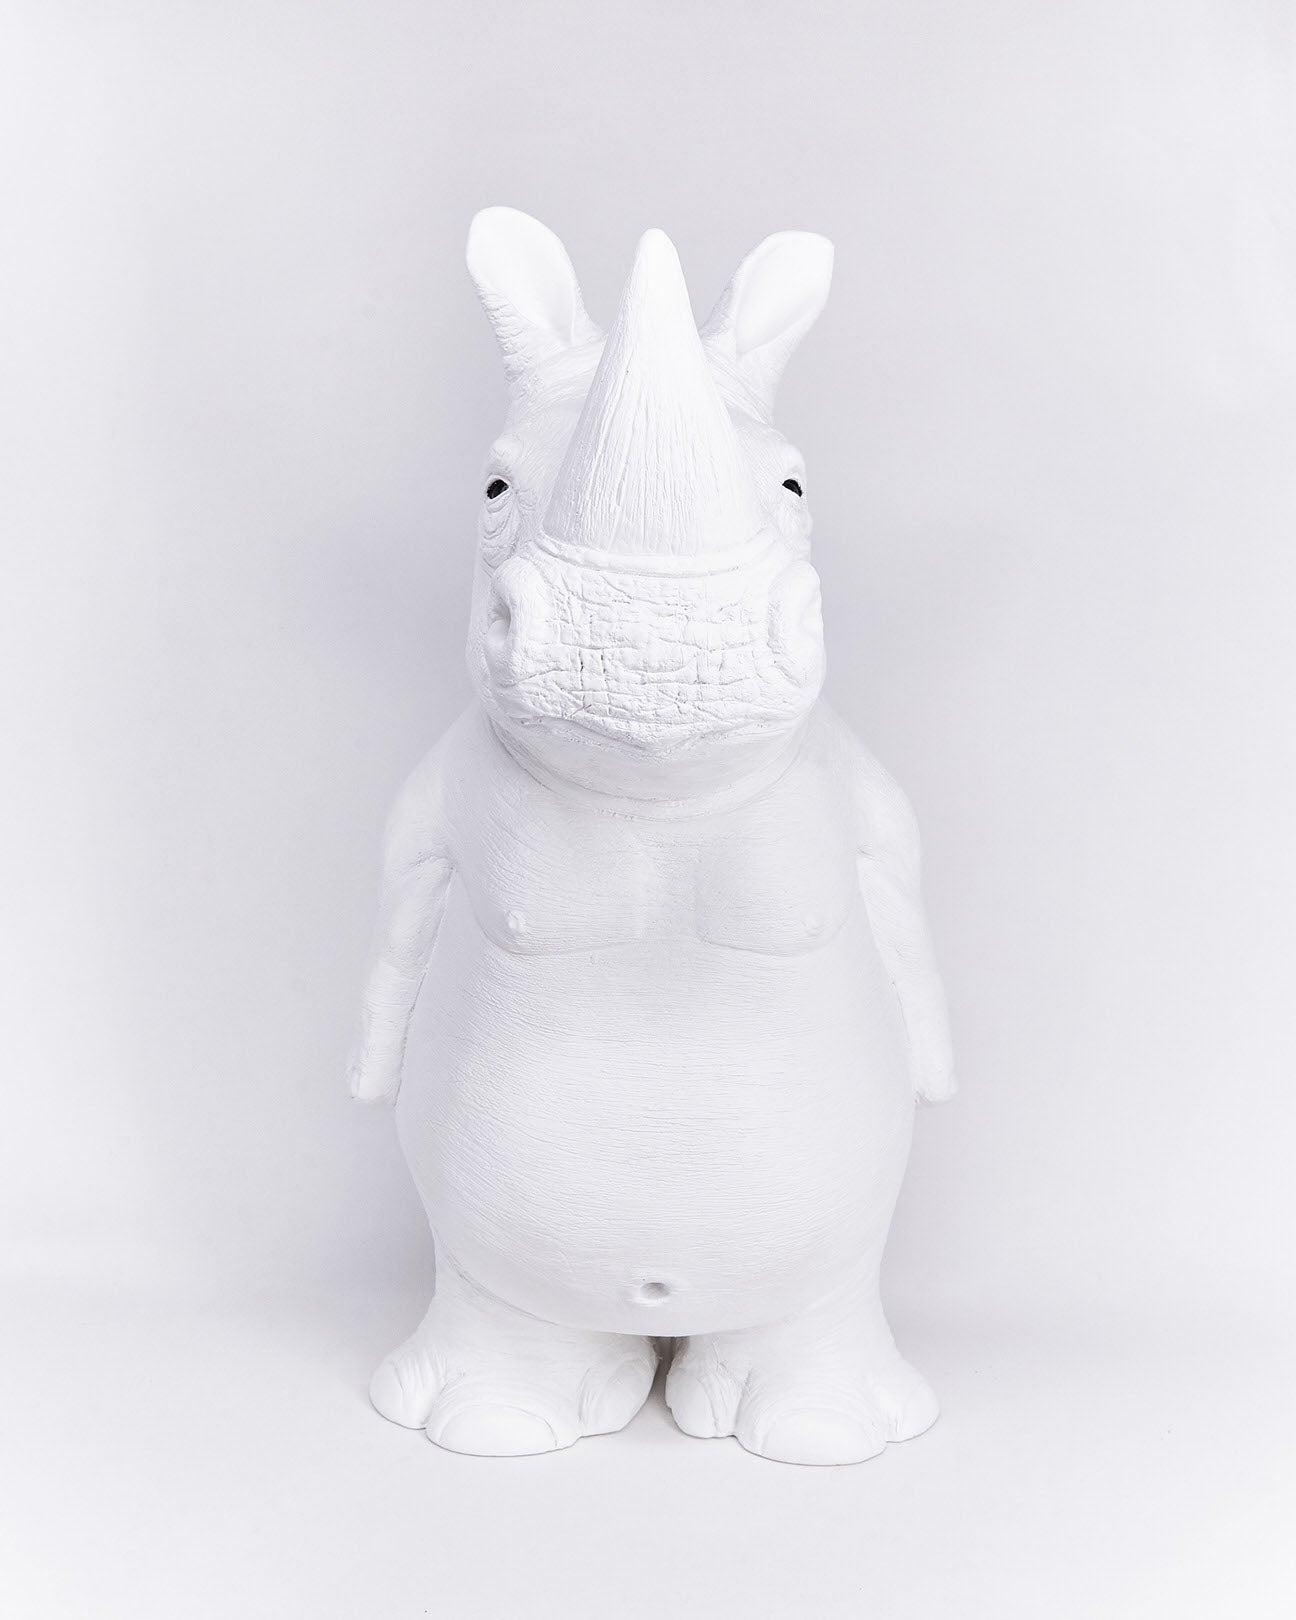 Rhino-ceramic-animal-object-handmade-Ornamante-localdesigner-Nuovum-barcelona